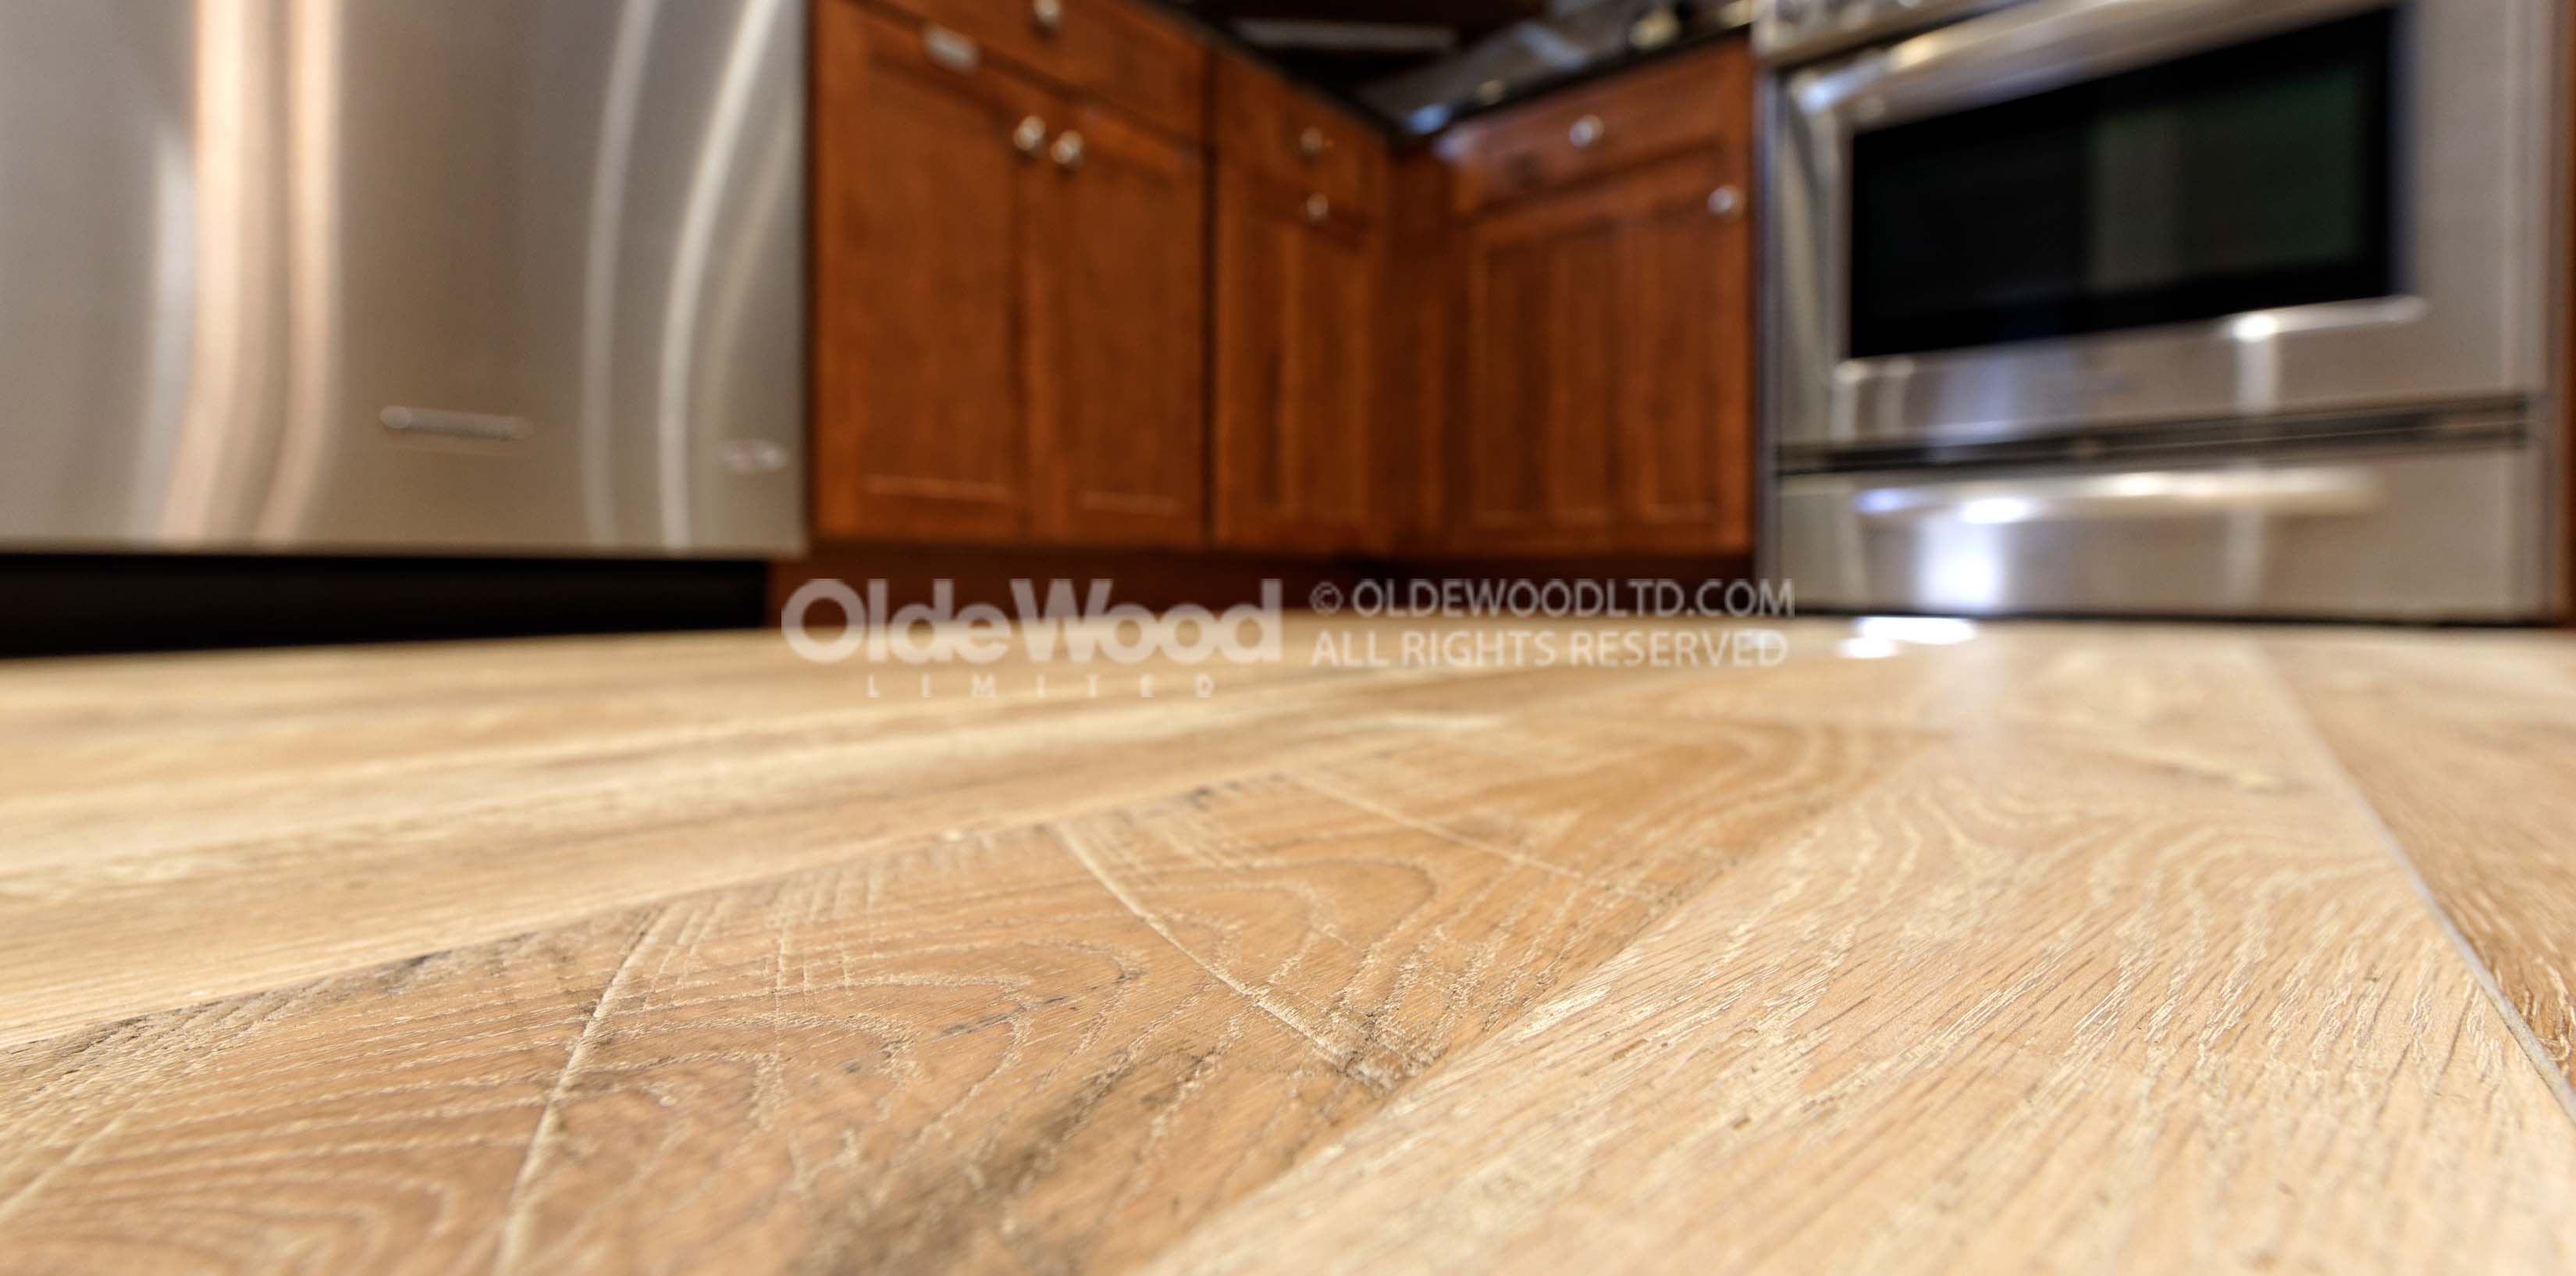 floors popular way fascinating for picture ideas flooring refinished birch best awesome clean and red floor prefinished image f hardwood to